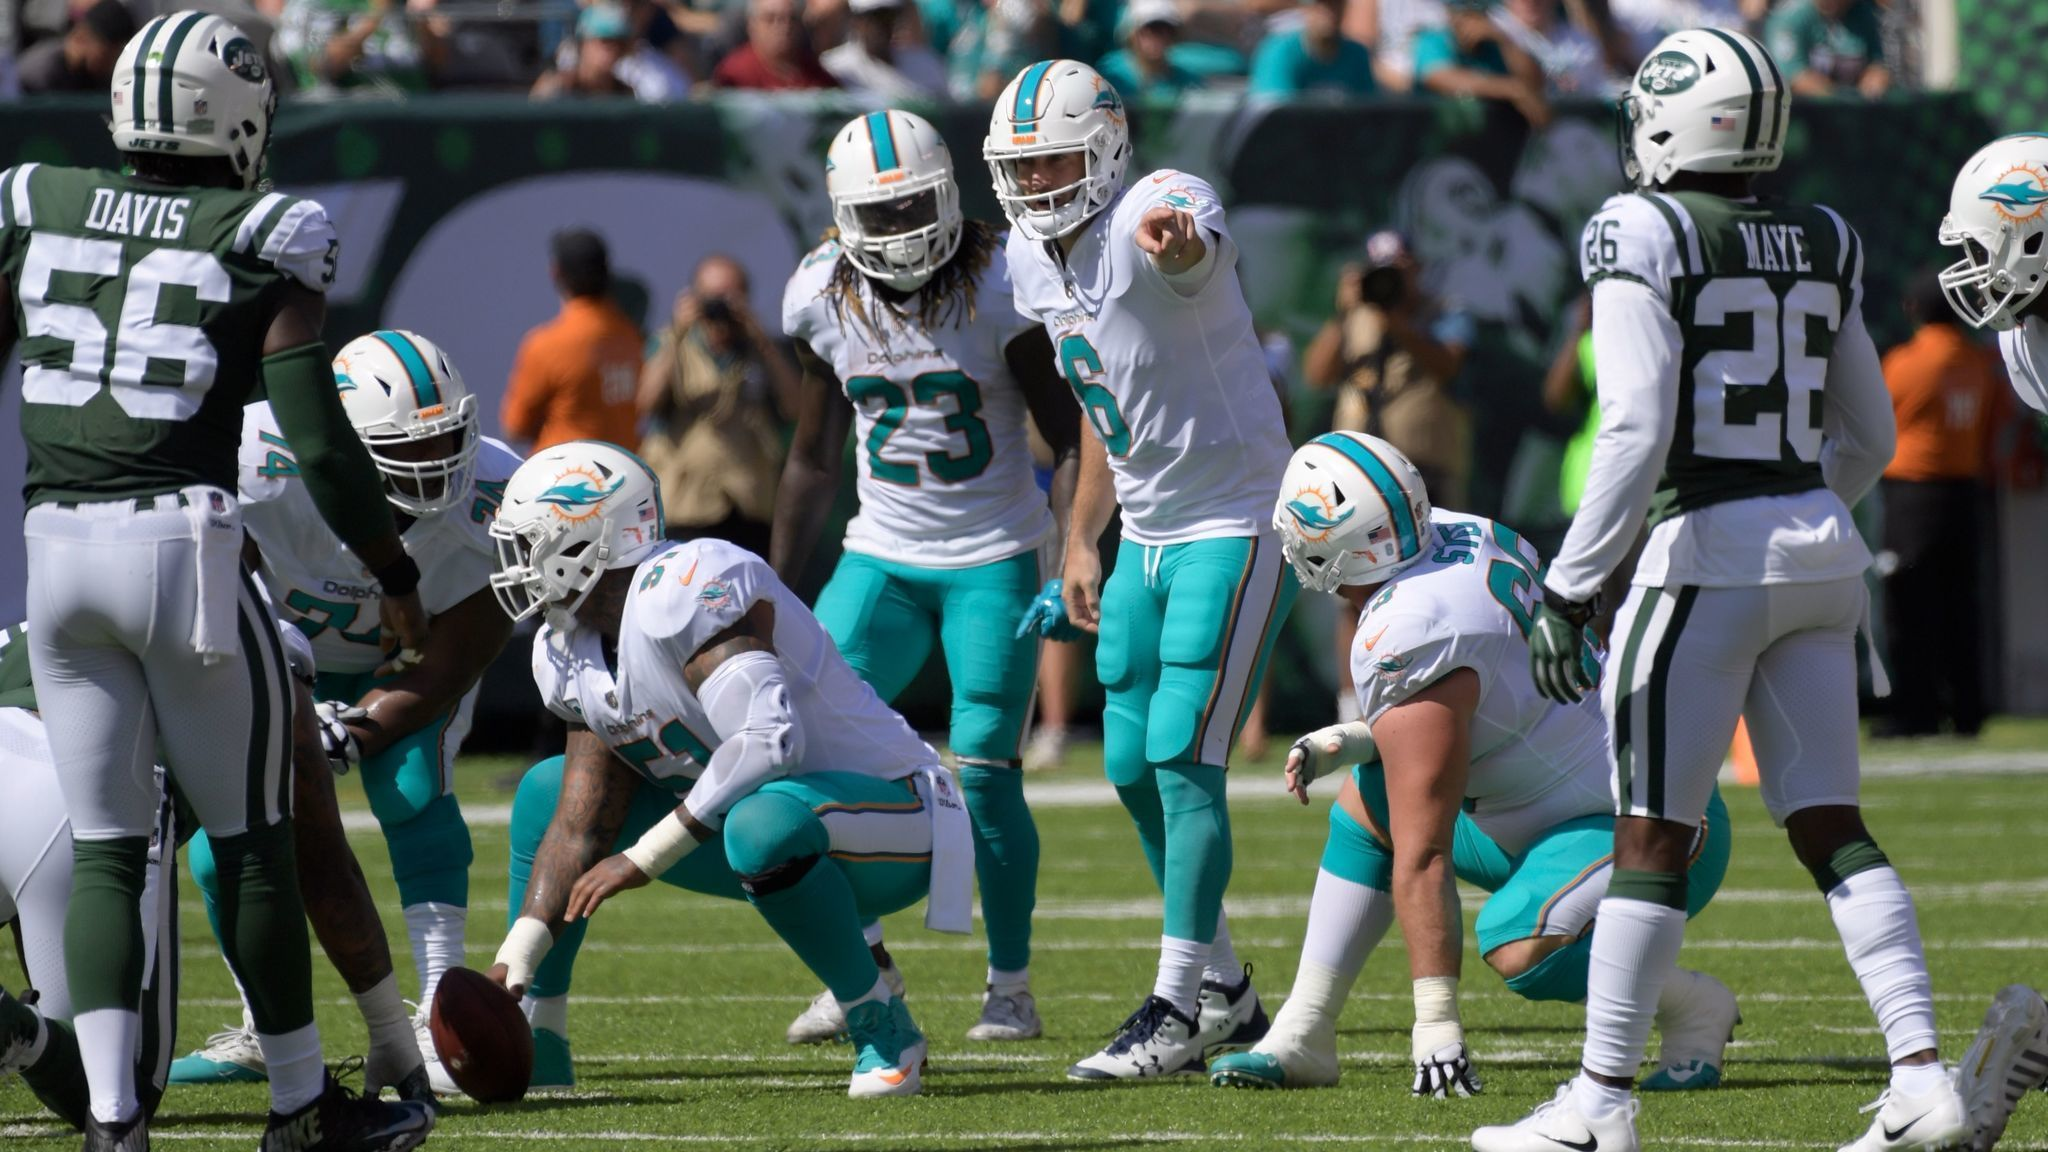 Fl-sp-dolphins-notes-20170924